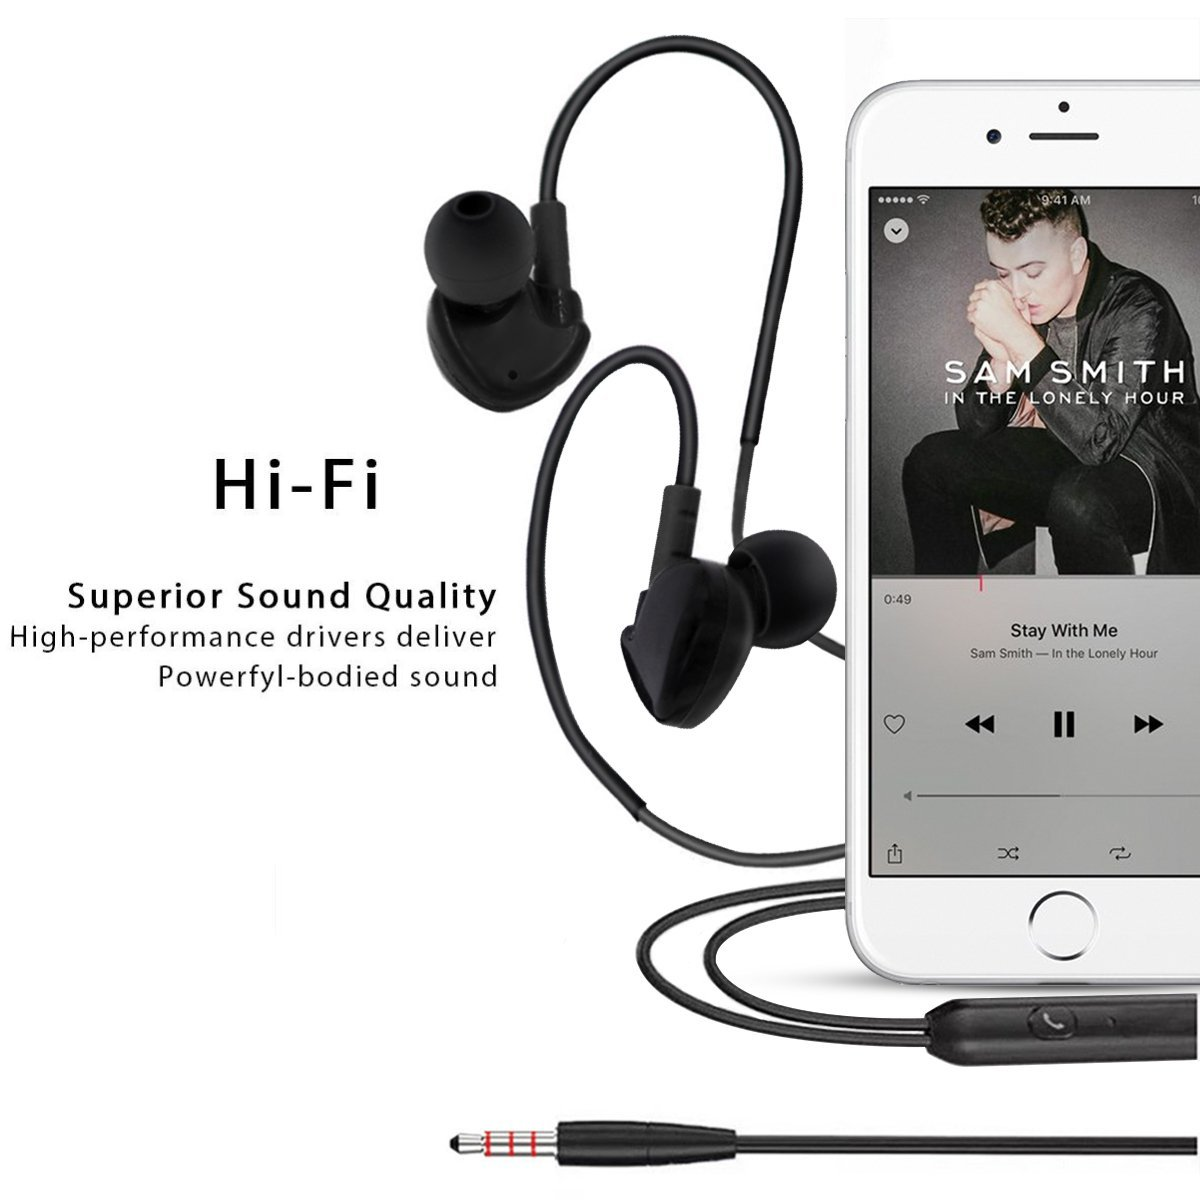 Hi-Fi Quality for Low Price